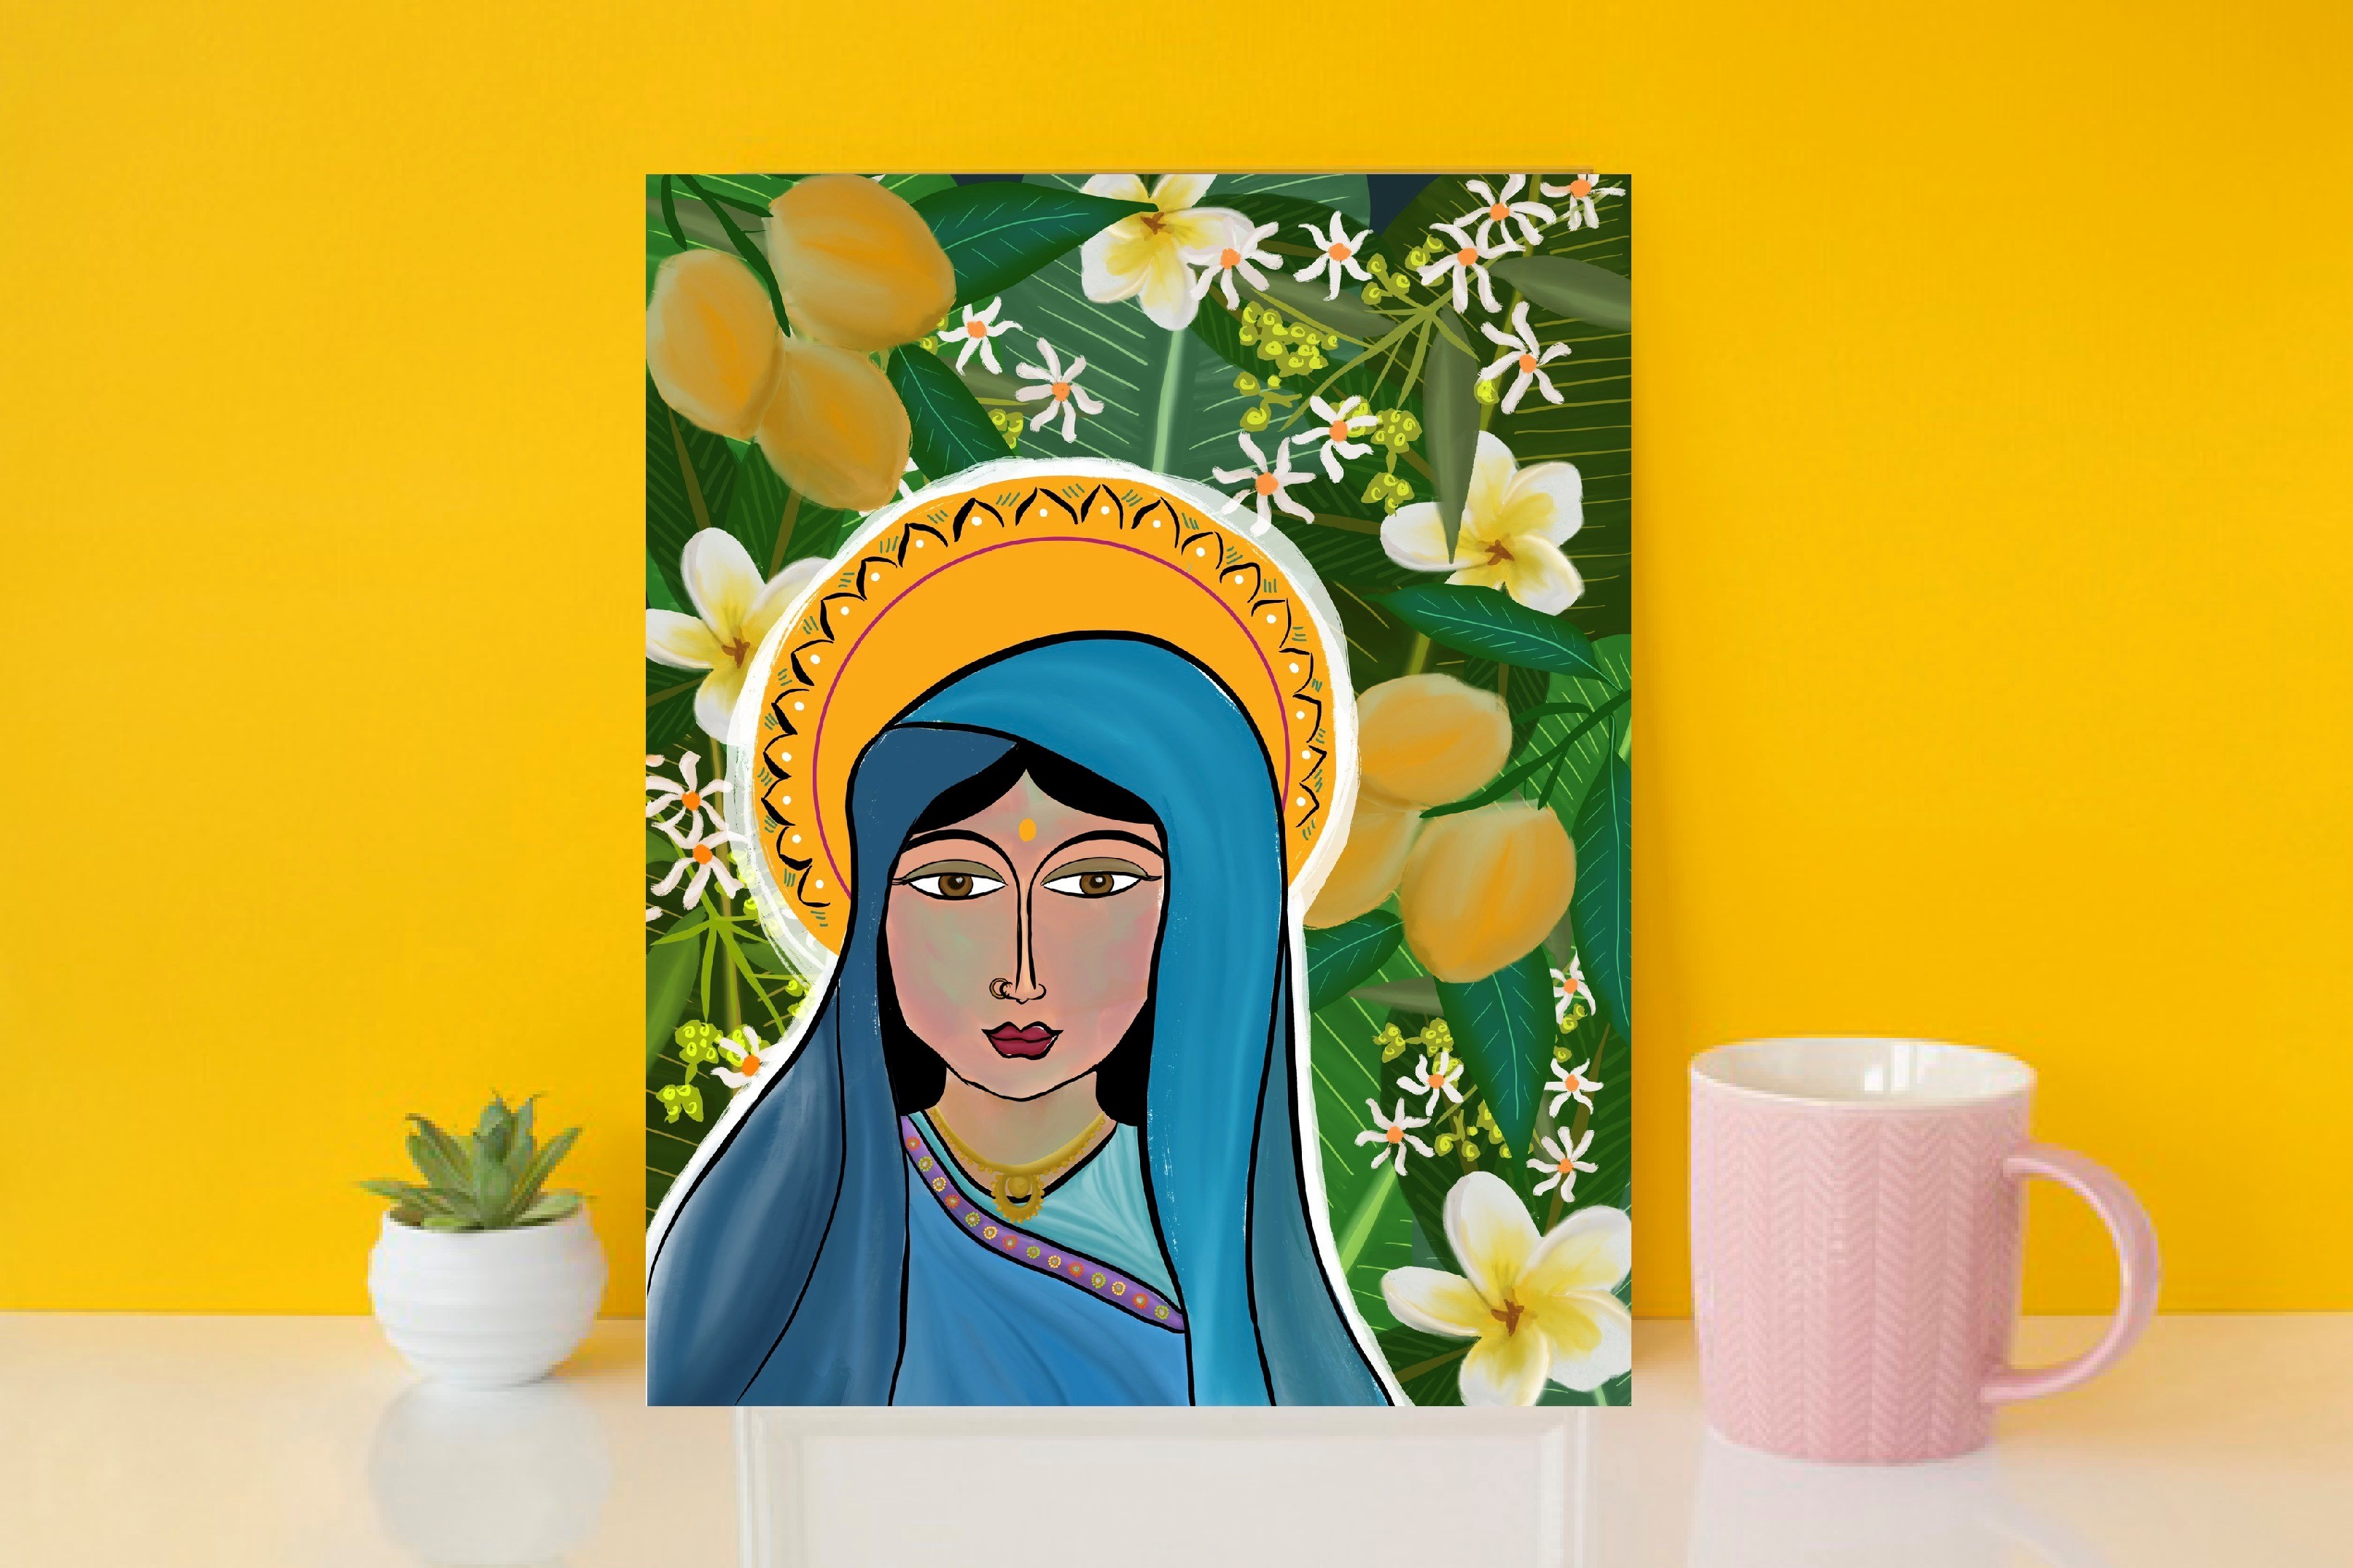 Our Lady of Mangoes